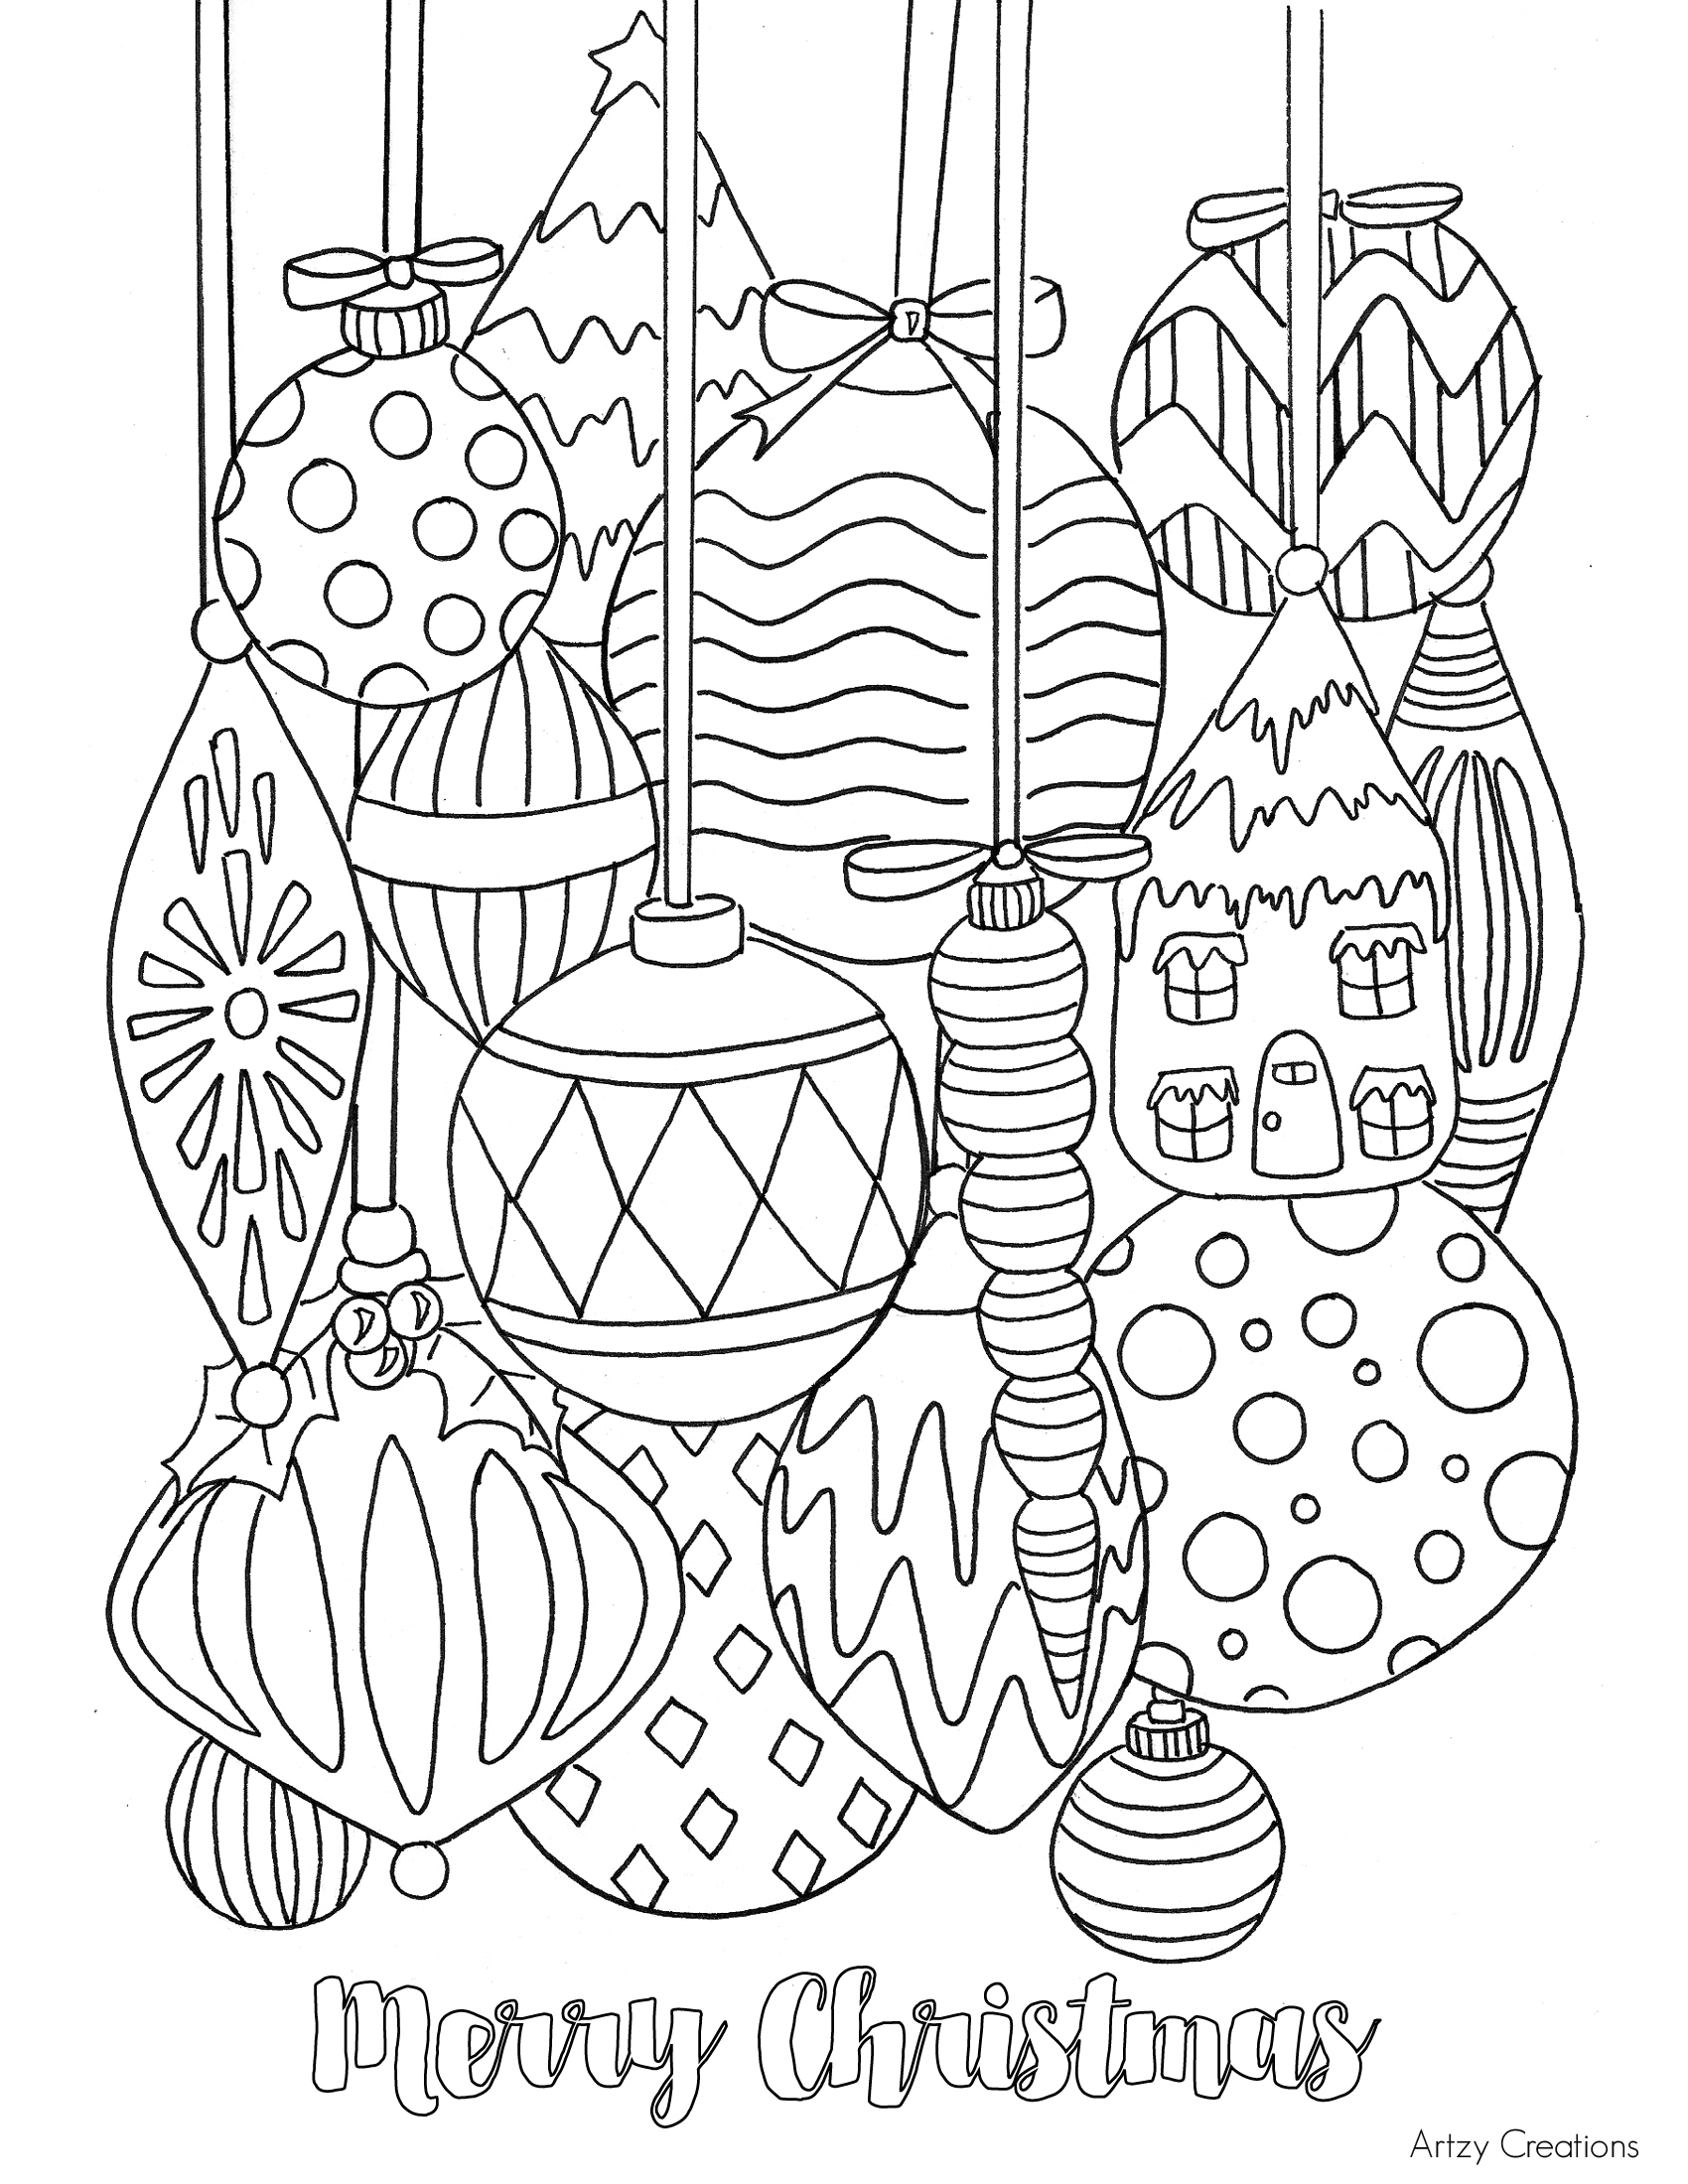 Christmas Coloring Ornaments With Pages Free To Print Books